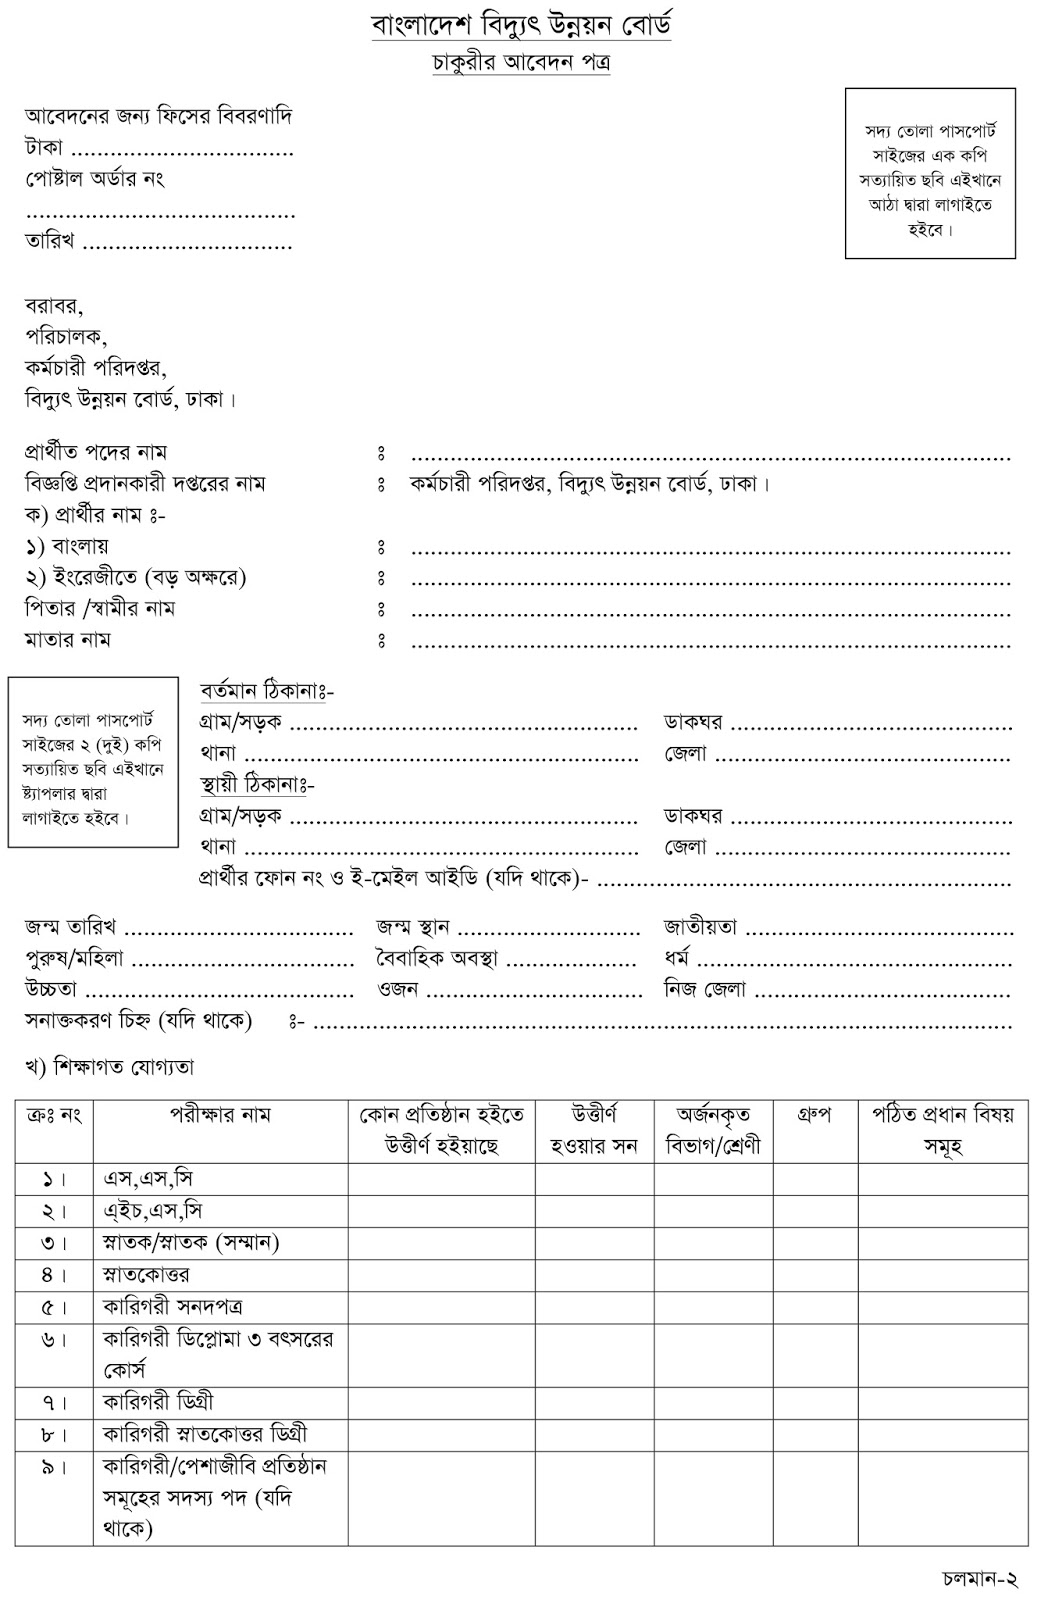 Bangladesh Power Development Board (BPDB) Job Appliaction Form